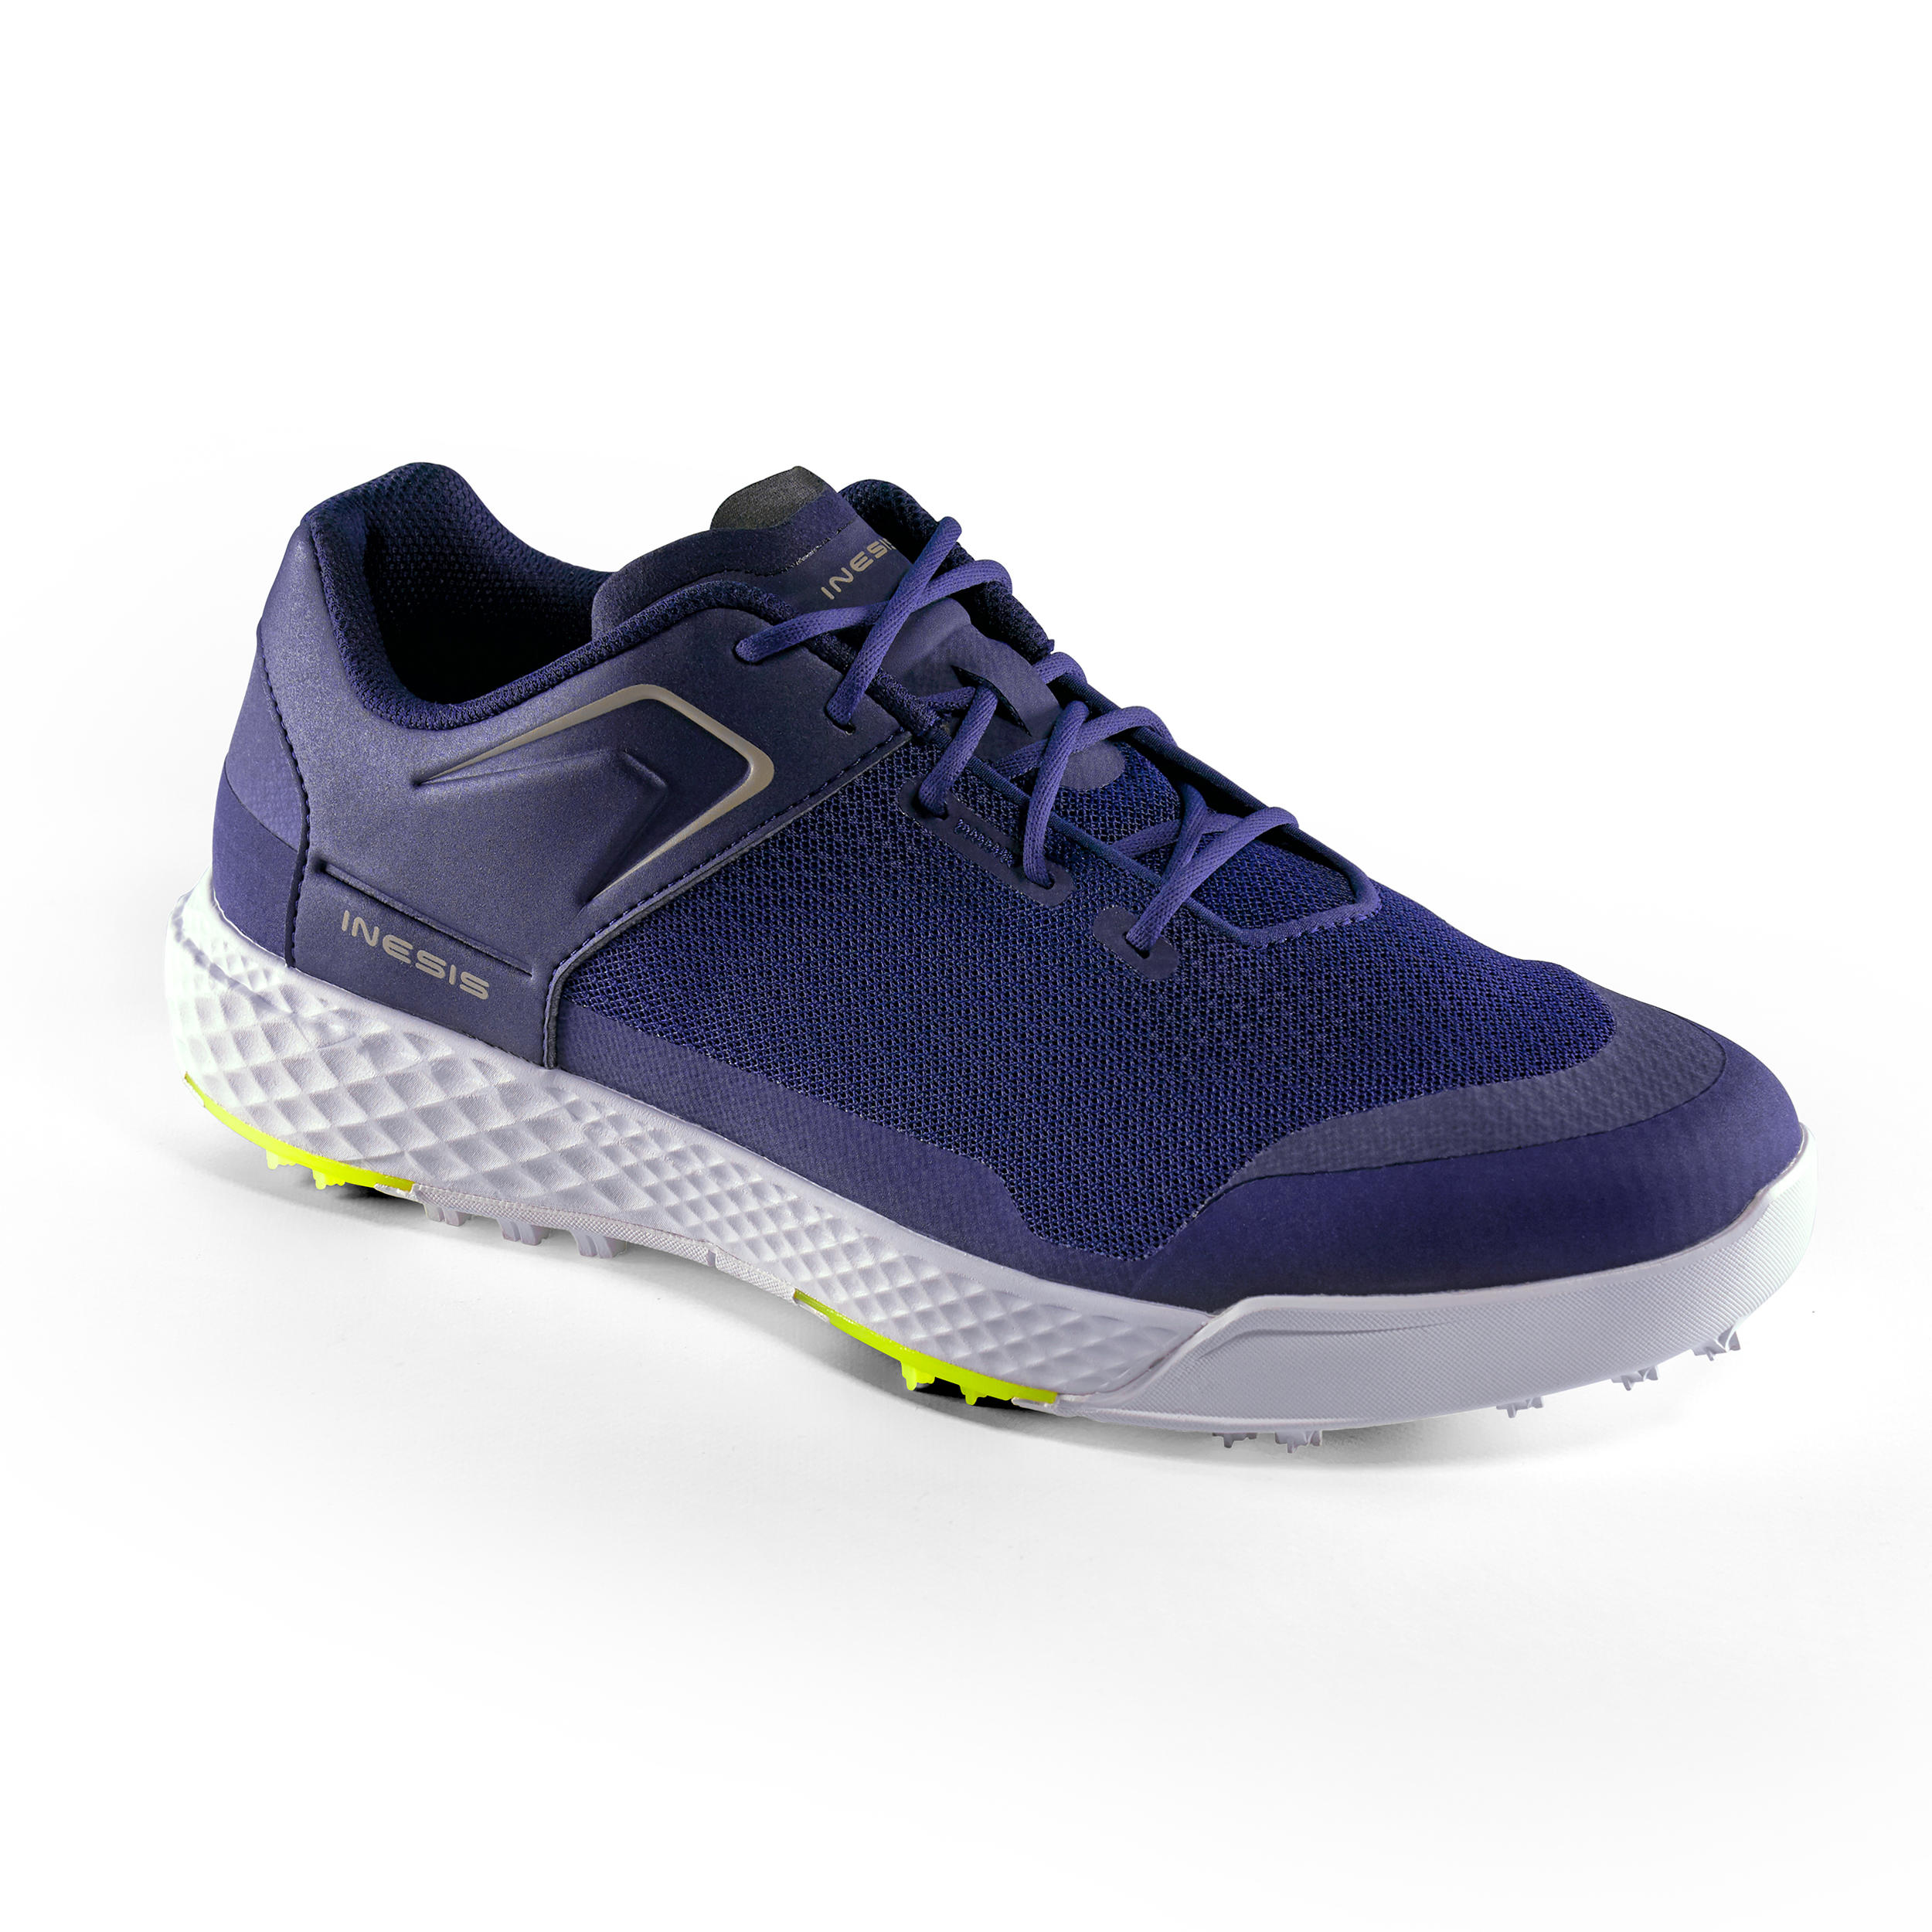 pretty nice dd8b9 390d0 Comprar zapatos y zapatillas de golf online  Decathlon